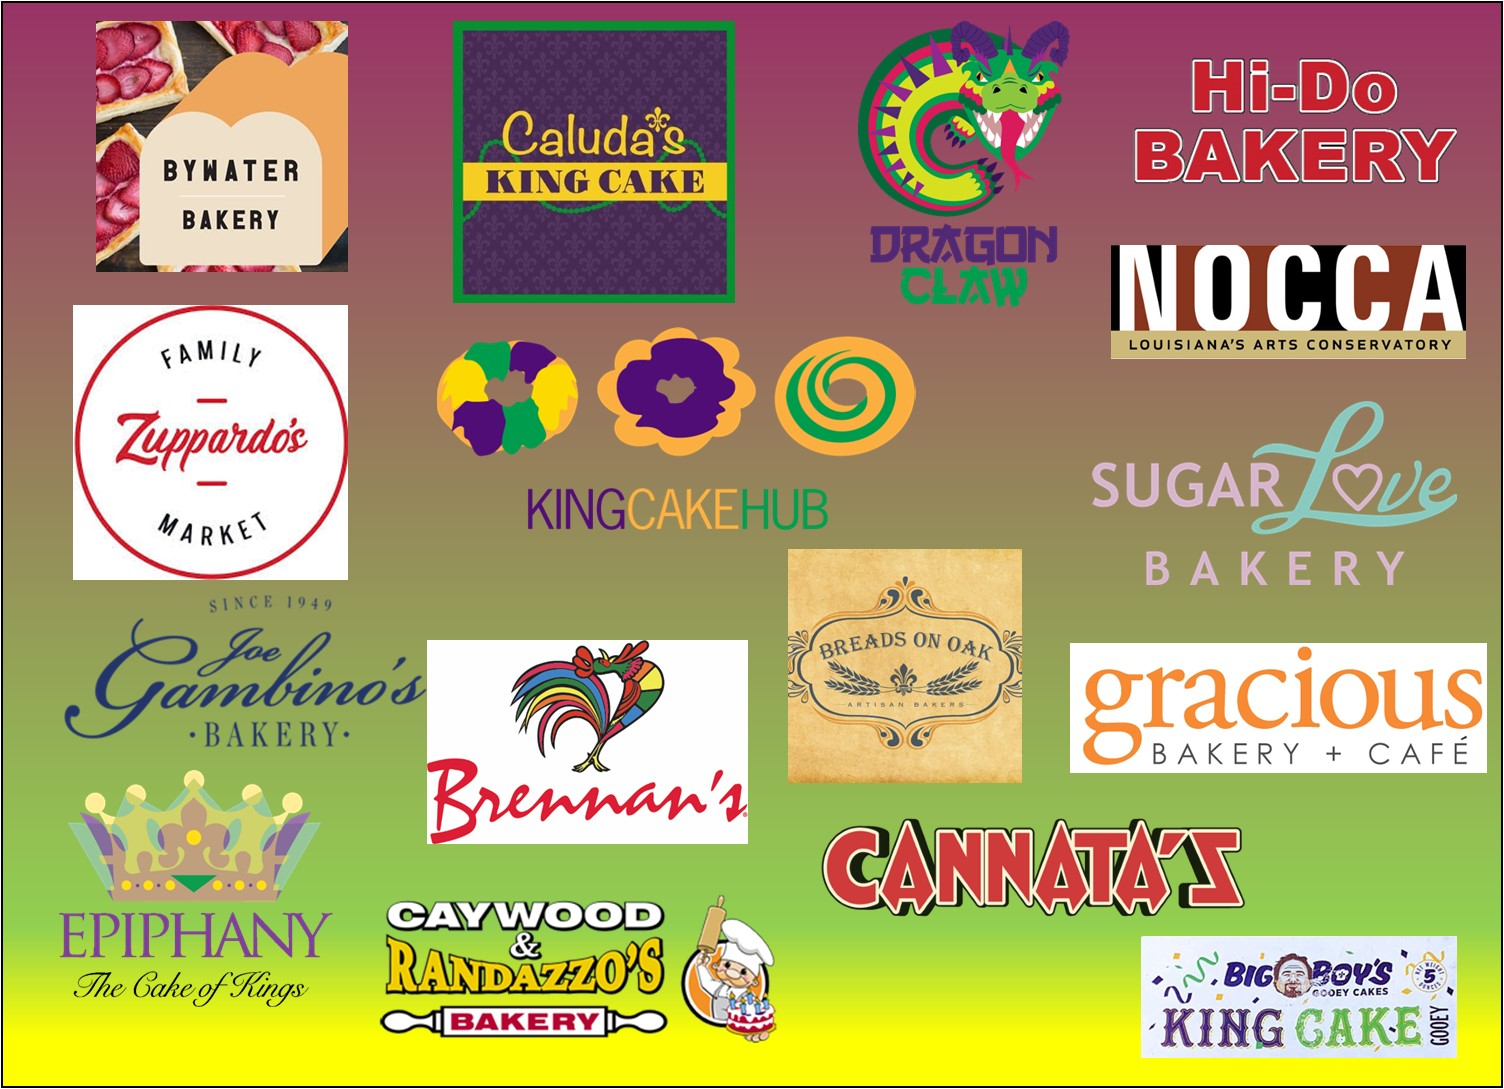 PRESS RELEASE: King Cake Hub's Season Three in a new Location!